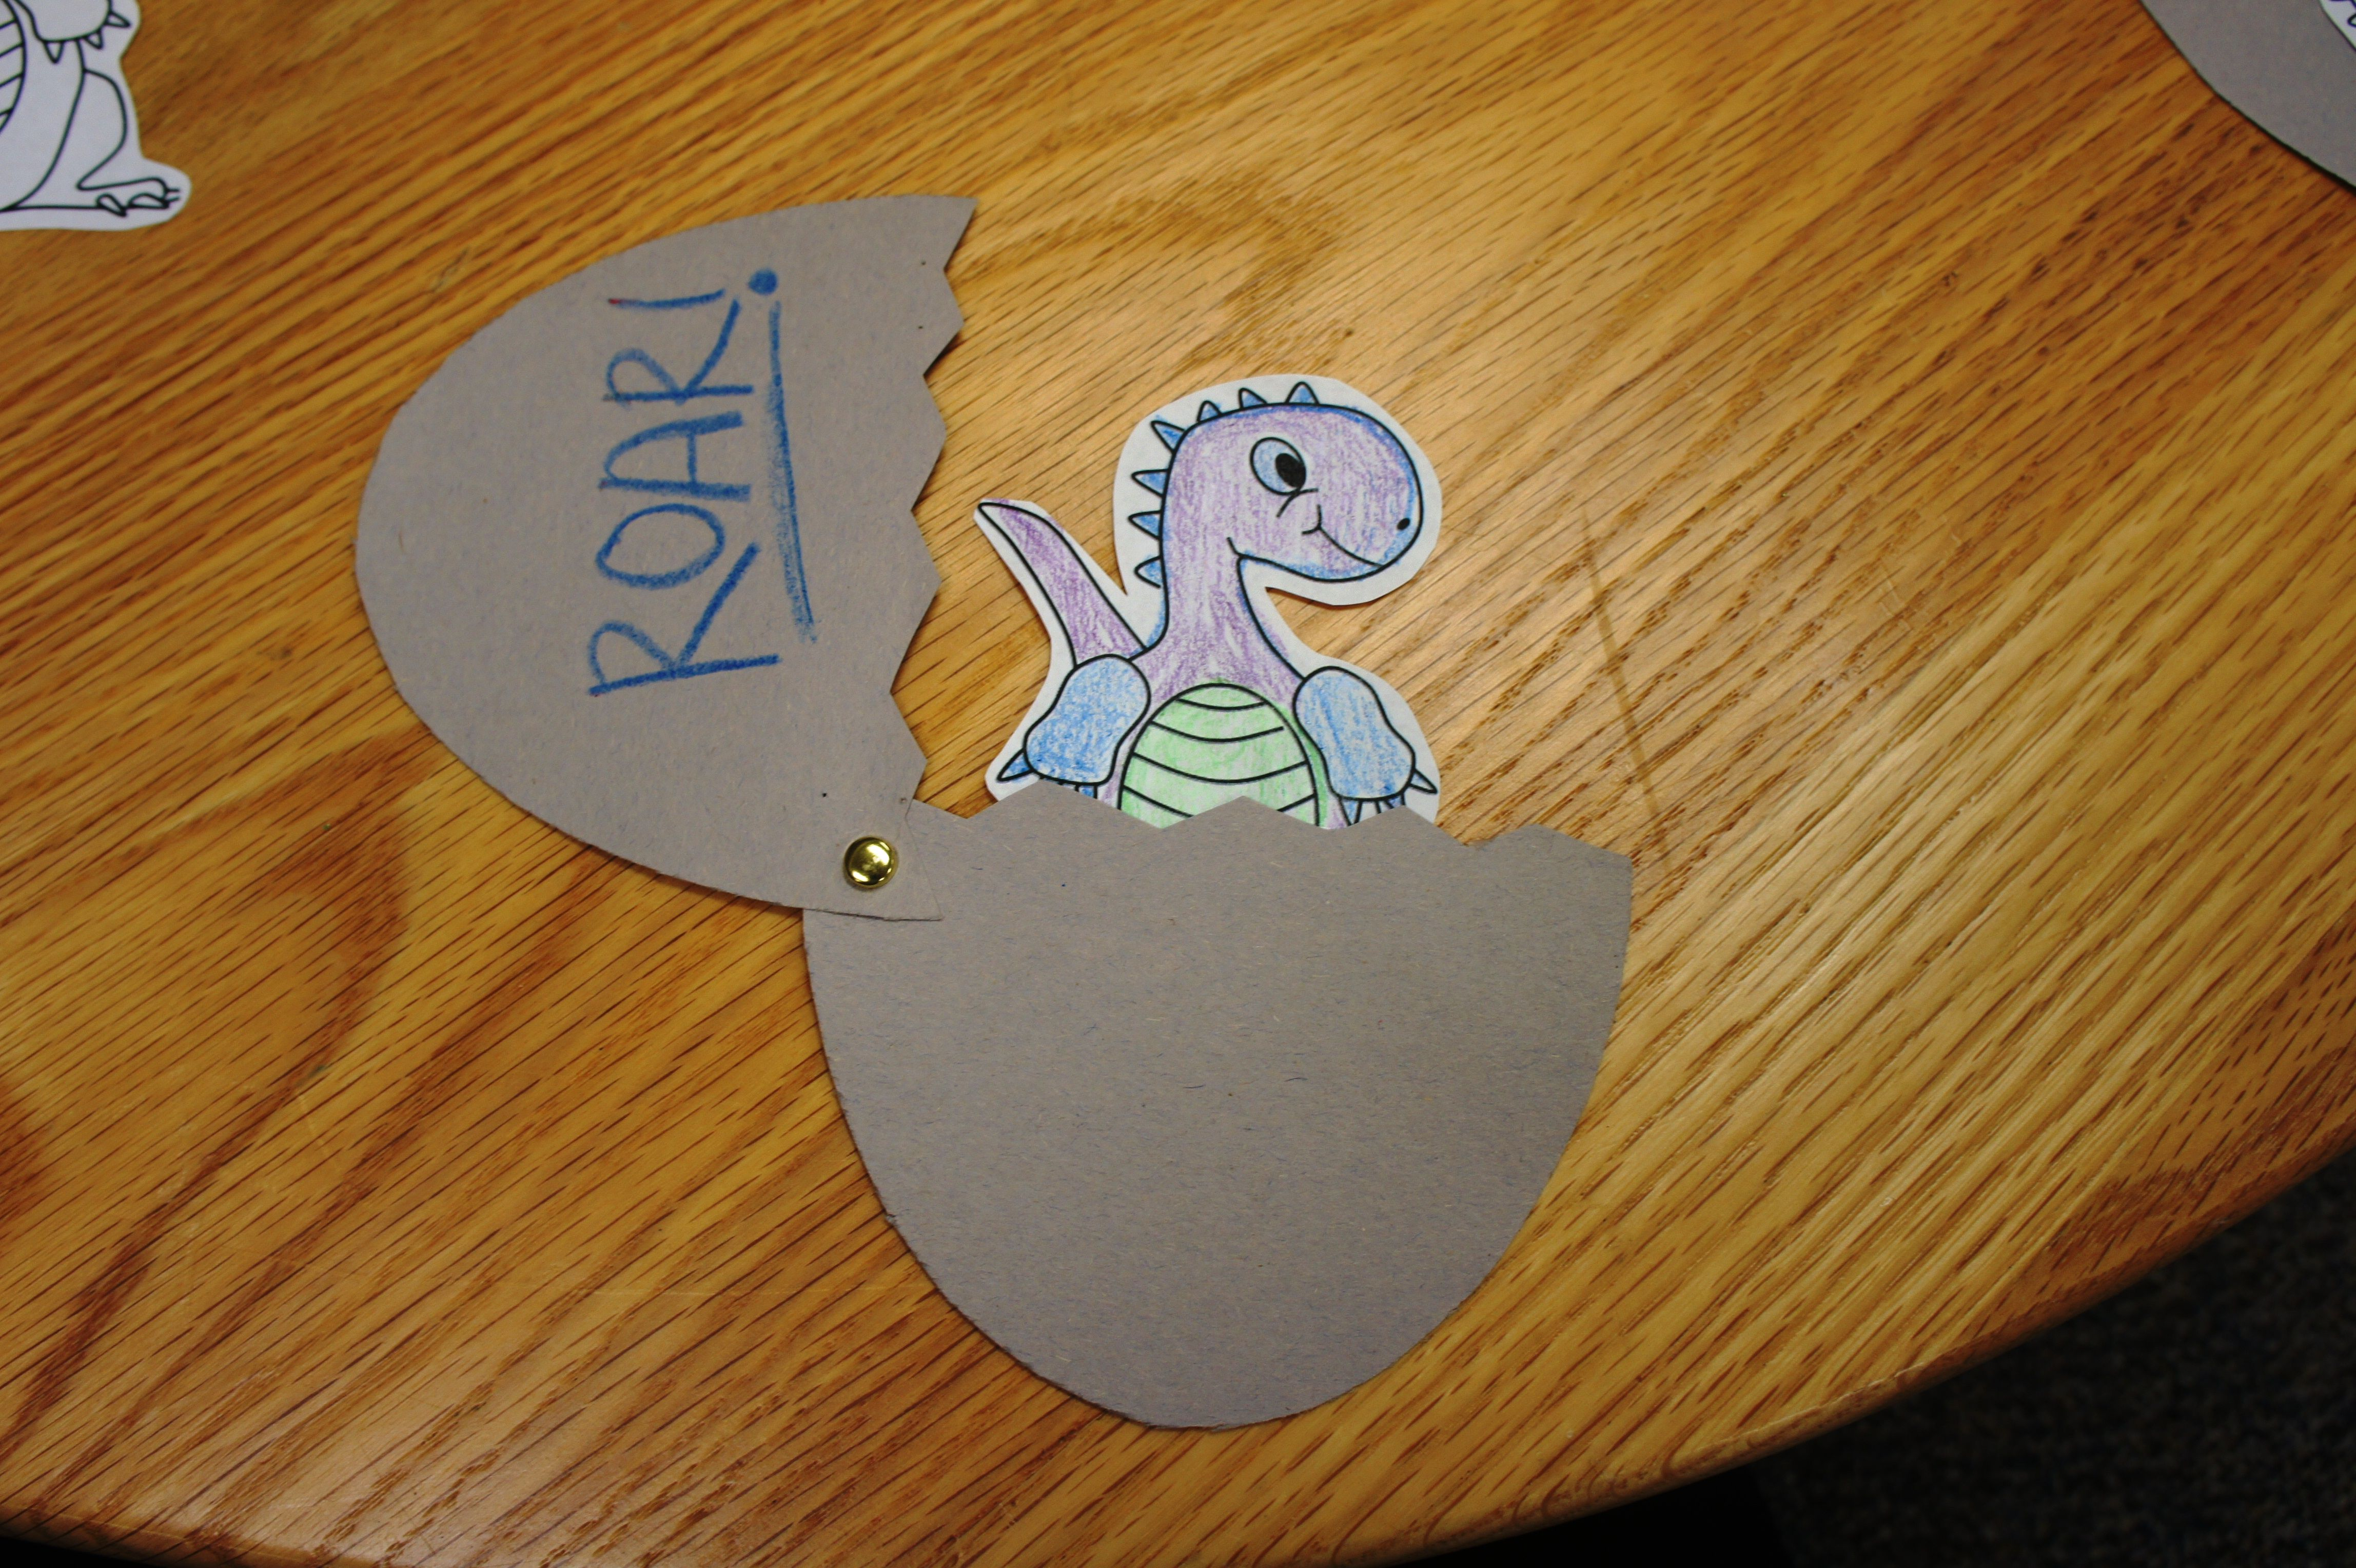 Essay On Dinosaurs For Kids